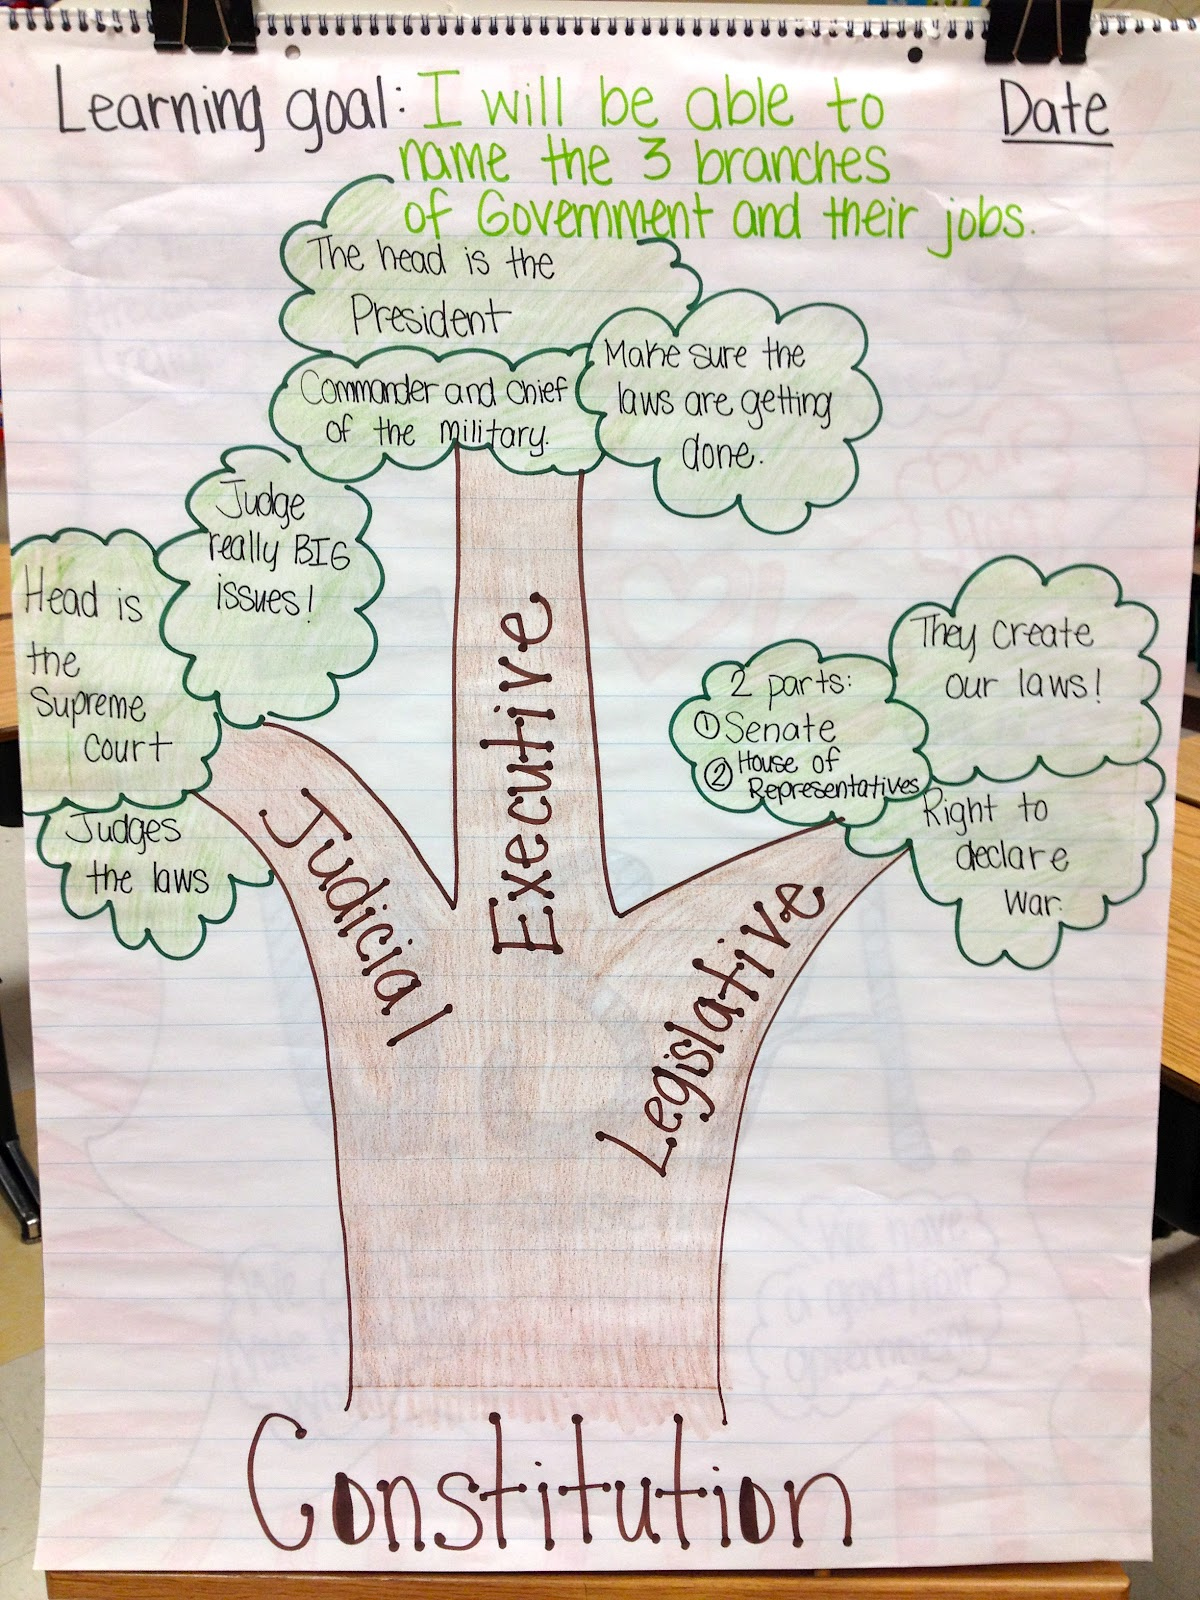 three branches of government for kids - Khafre